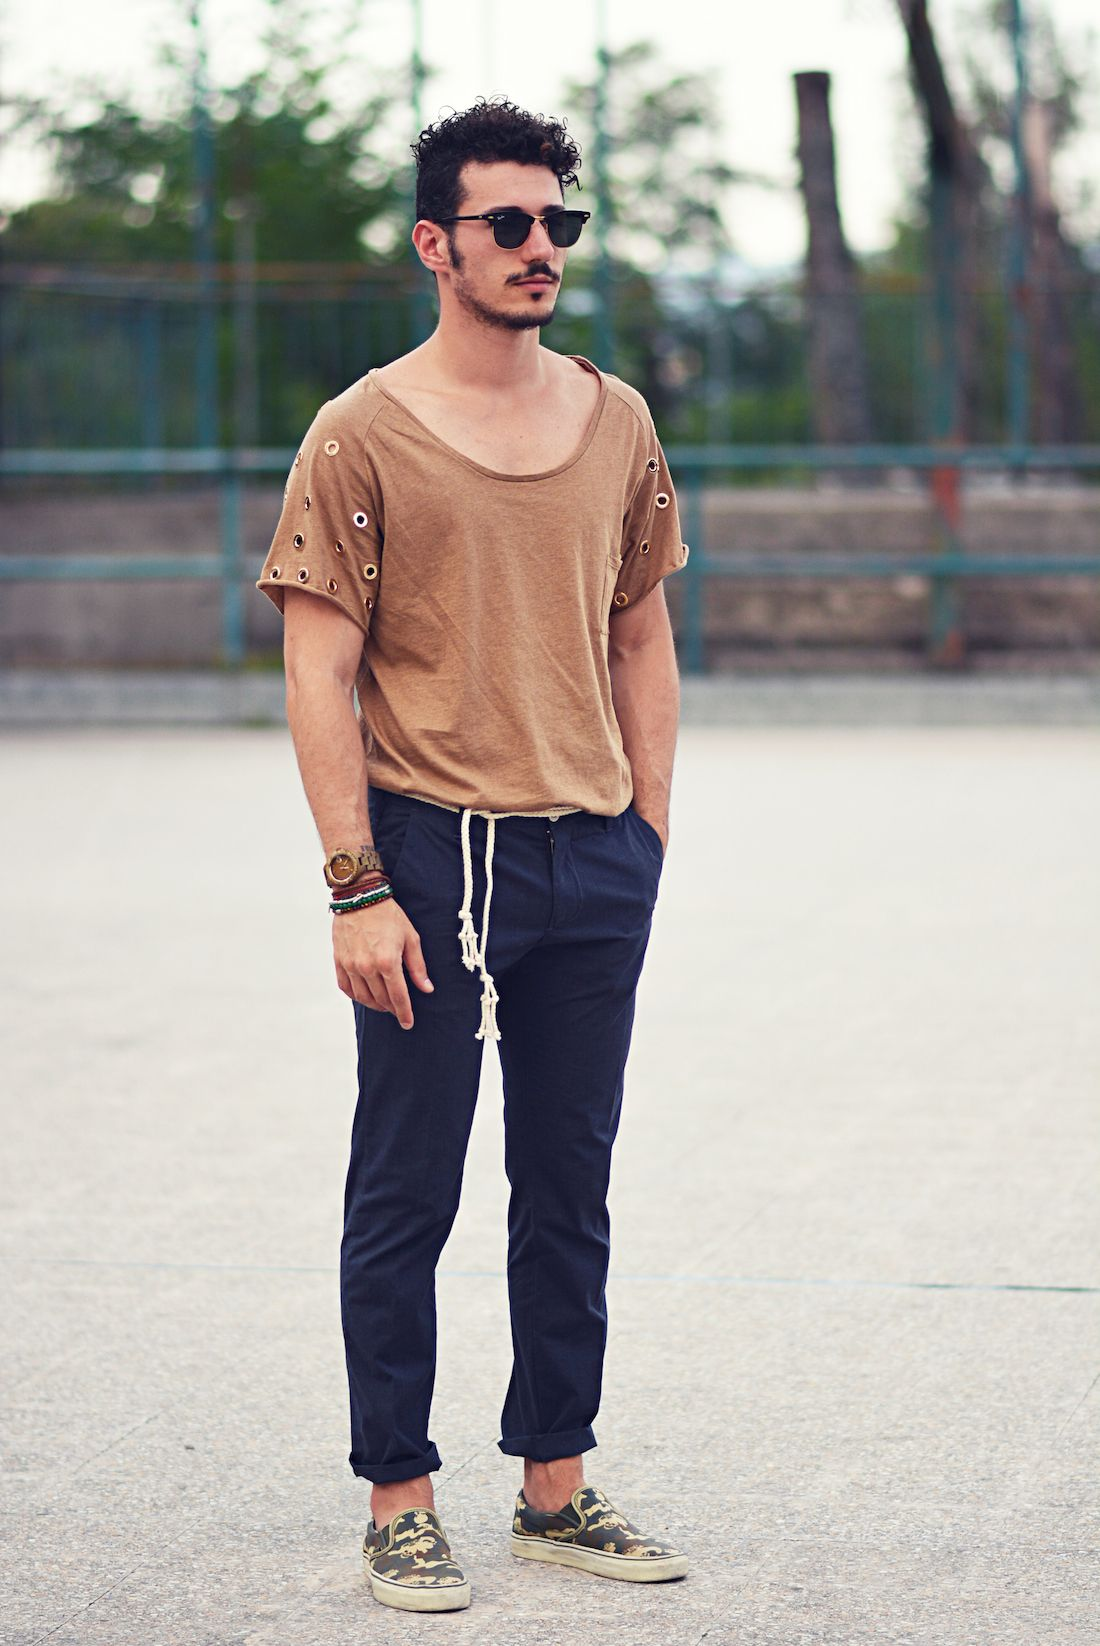 Shop this look for $59: http://lookastic.com/men/looks/tan-crew-neck-t-shirt-and-navy-chinos-and-dark-green-slip-on-sneakers-and-black-sunglasses/3598 — Tan Crew-neck T-shirt — Navy Chinos — Dark Green Camouflage Canvas Slip-on Sneakers — Black Sunglasses